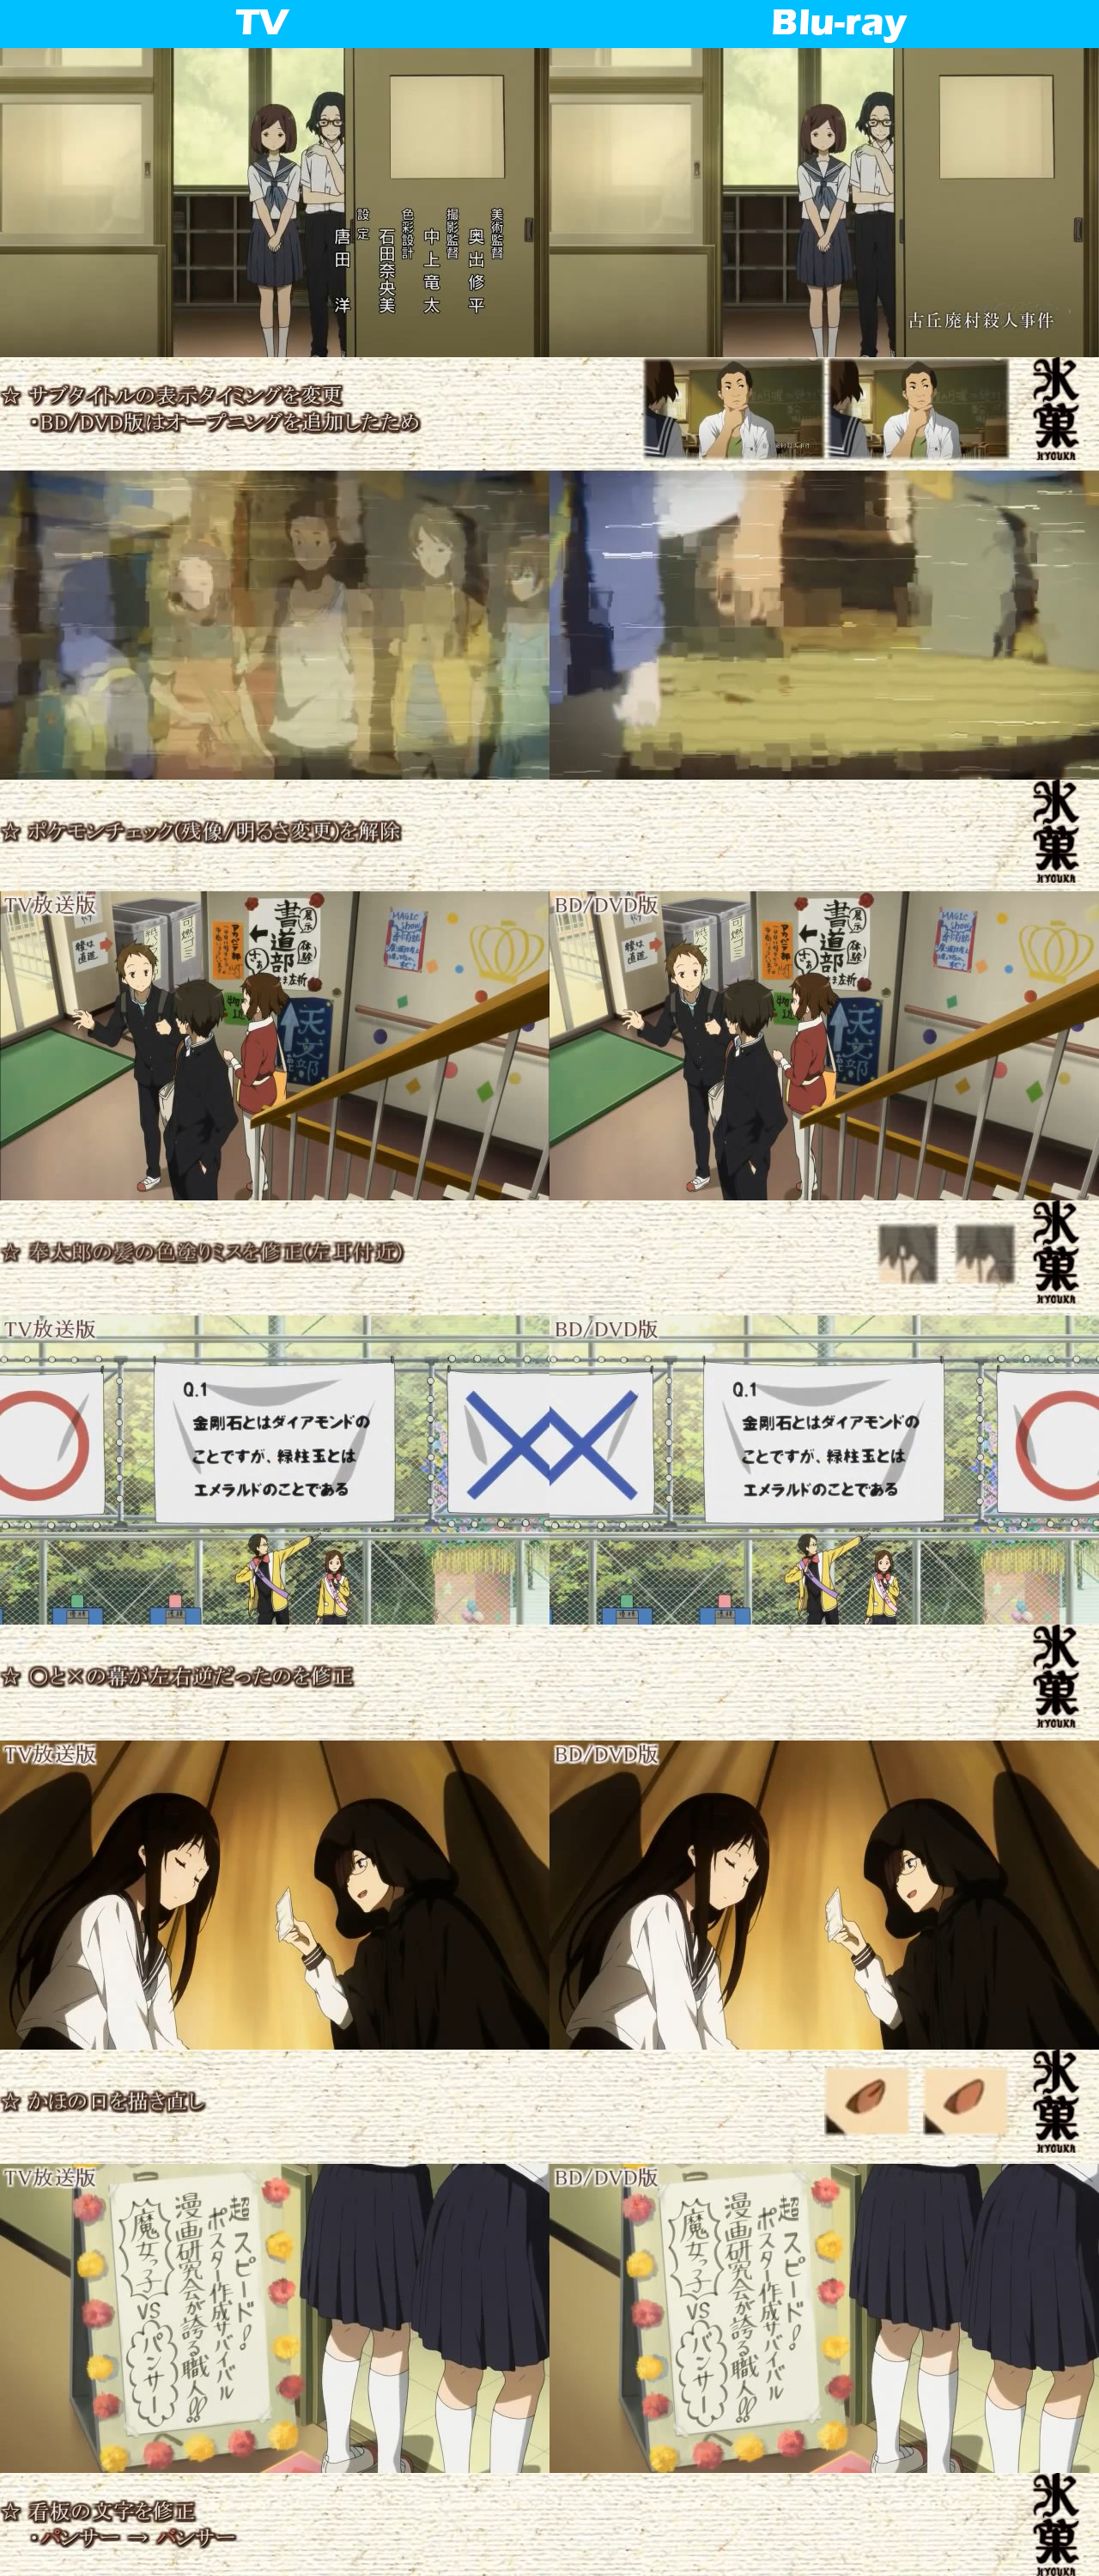 Hyouka-TV-vs-Blu-ray-Comparison-4